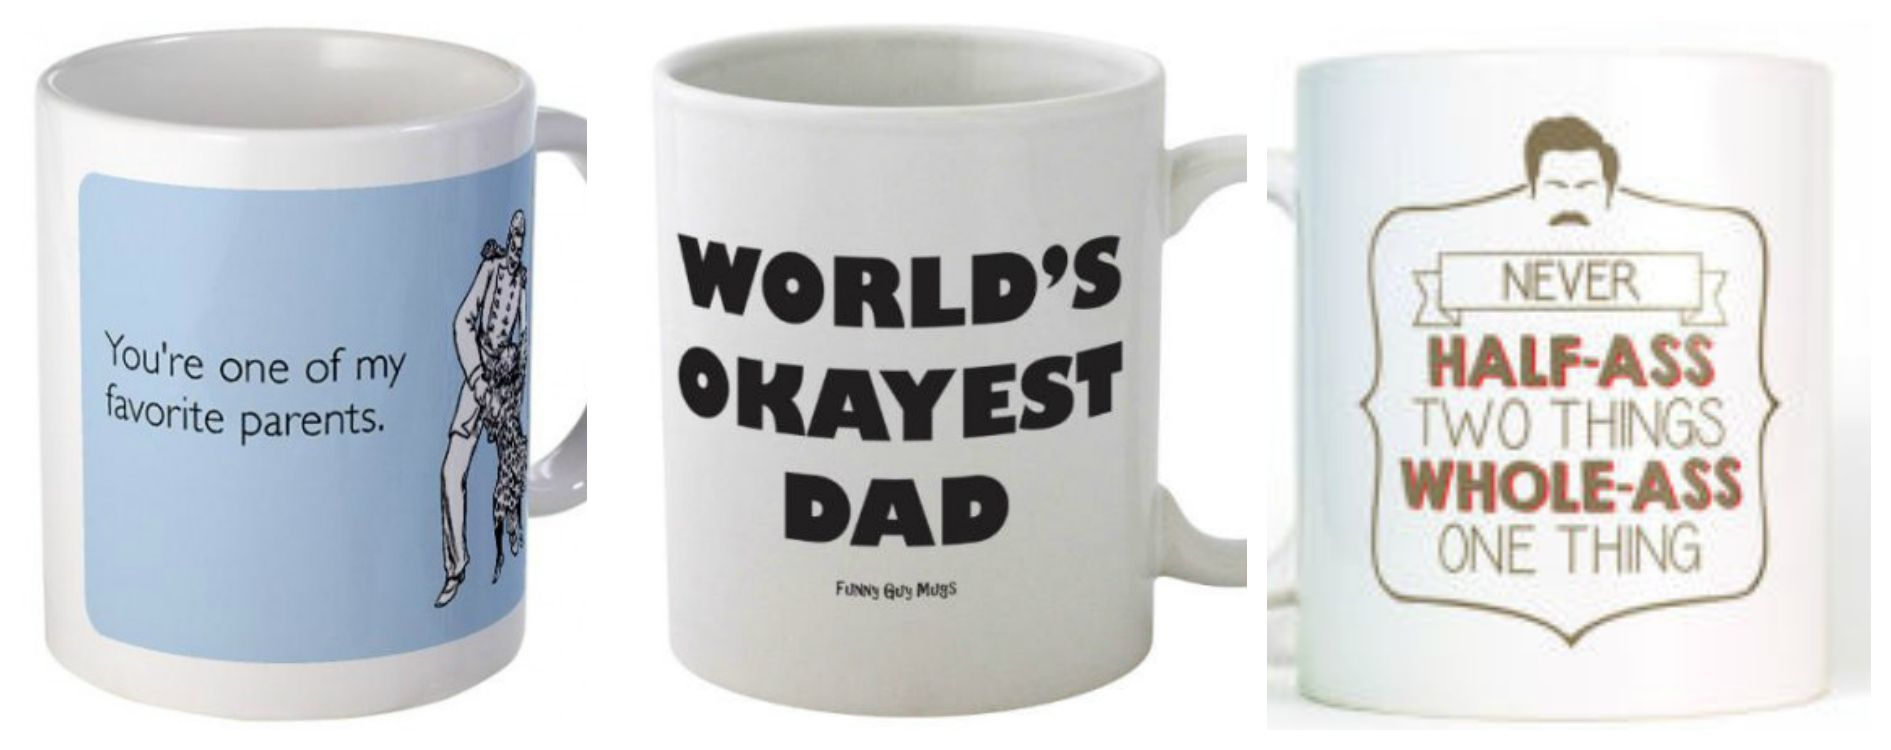 20 Funny Father S Day Mugs Cute Gift Mugs For Dad